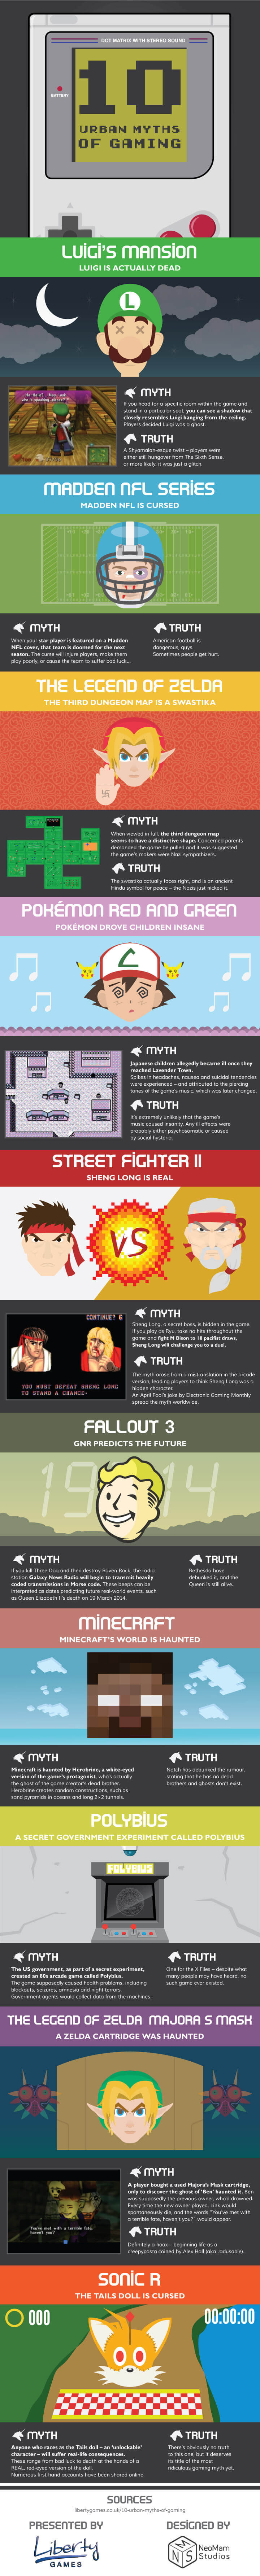 10 Urban myths of video games